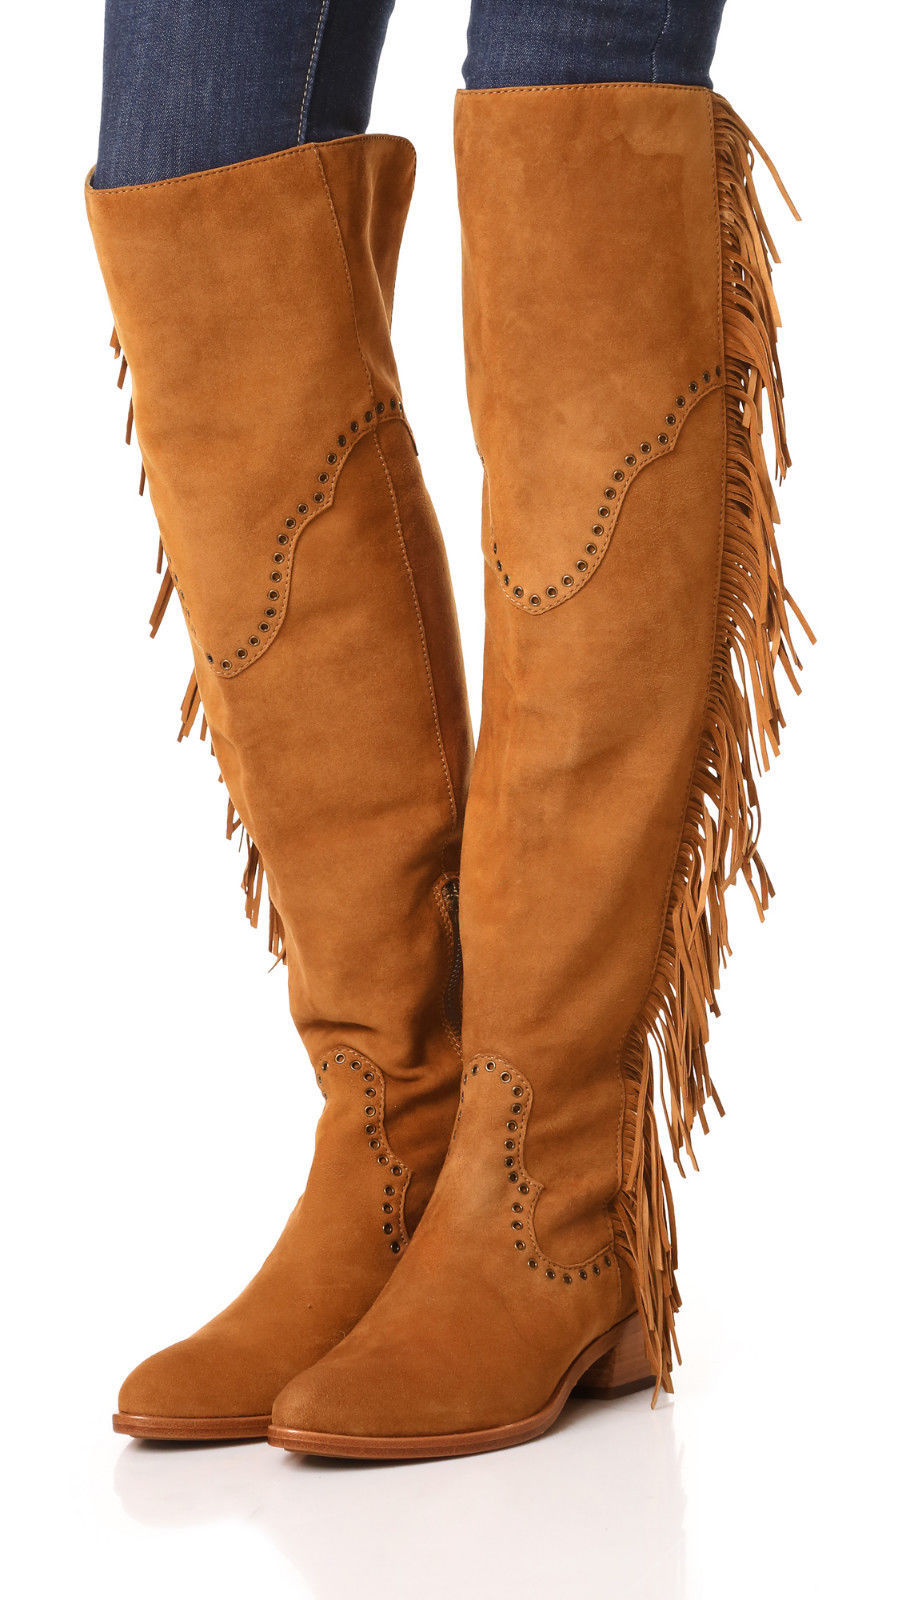 New $578 Womens 9.5 Frye Suede Leather Boots OTK Tall Knee Fringe Ray Camel Tan